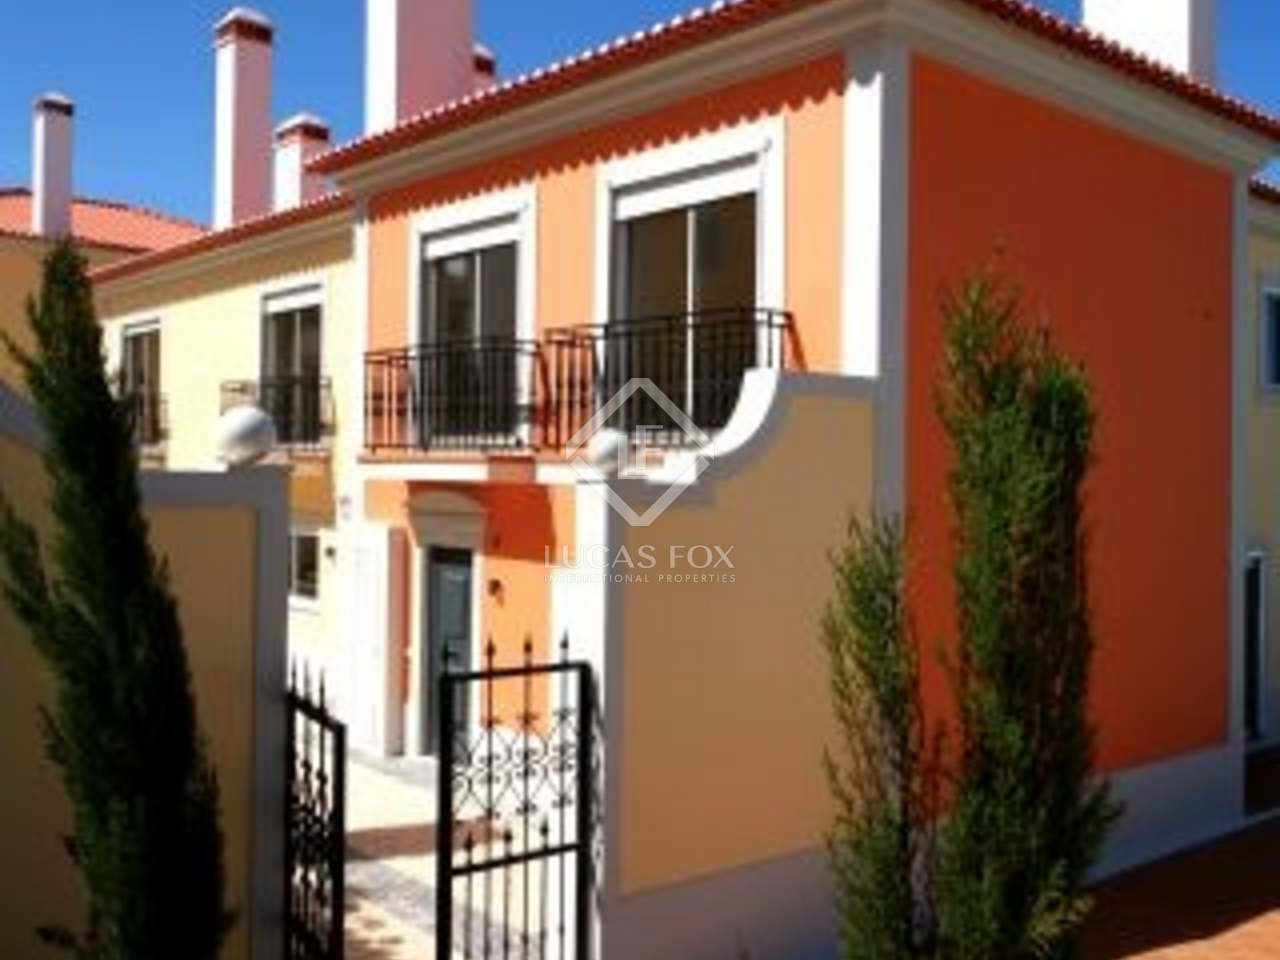 Fantastic four bedroom town house for sale in Praia del Rey, Silver Coast. On golf course with sea views